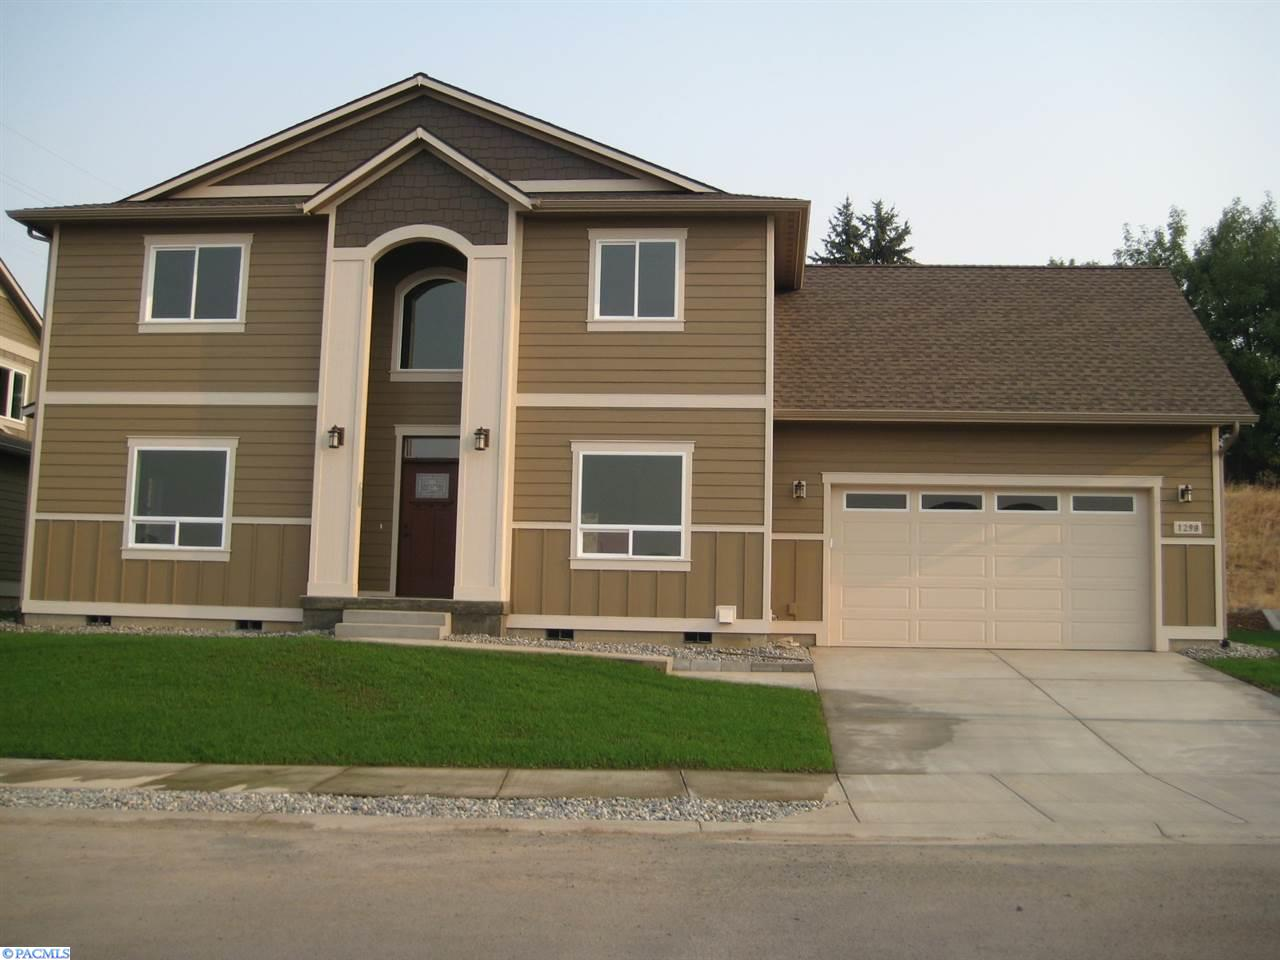 1298 Sw Hannah Street, Pullman, Washington 99163